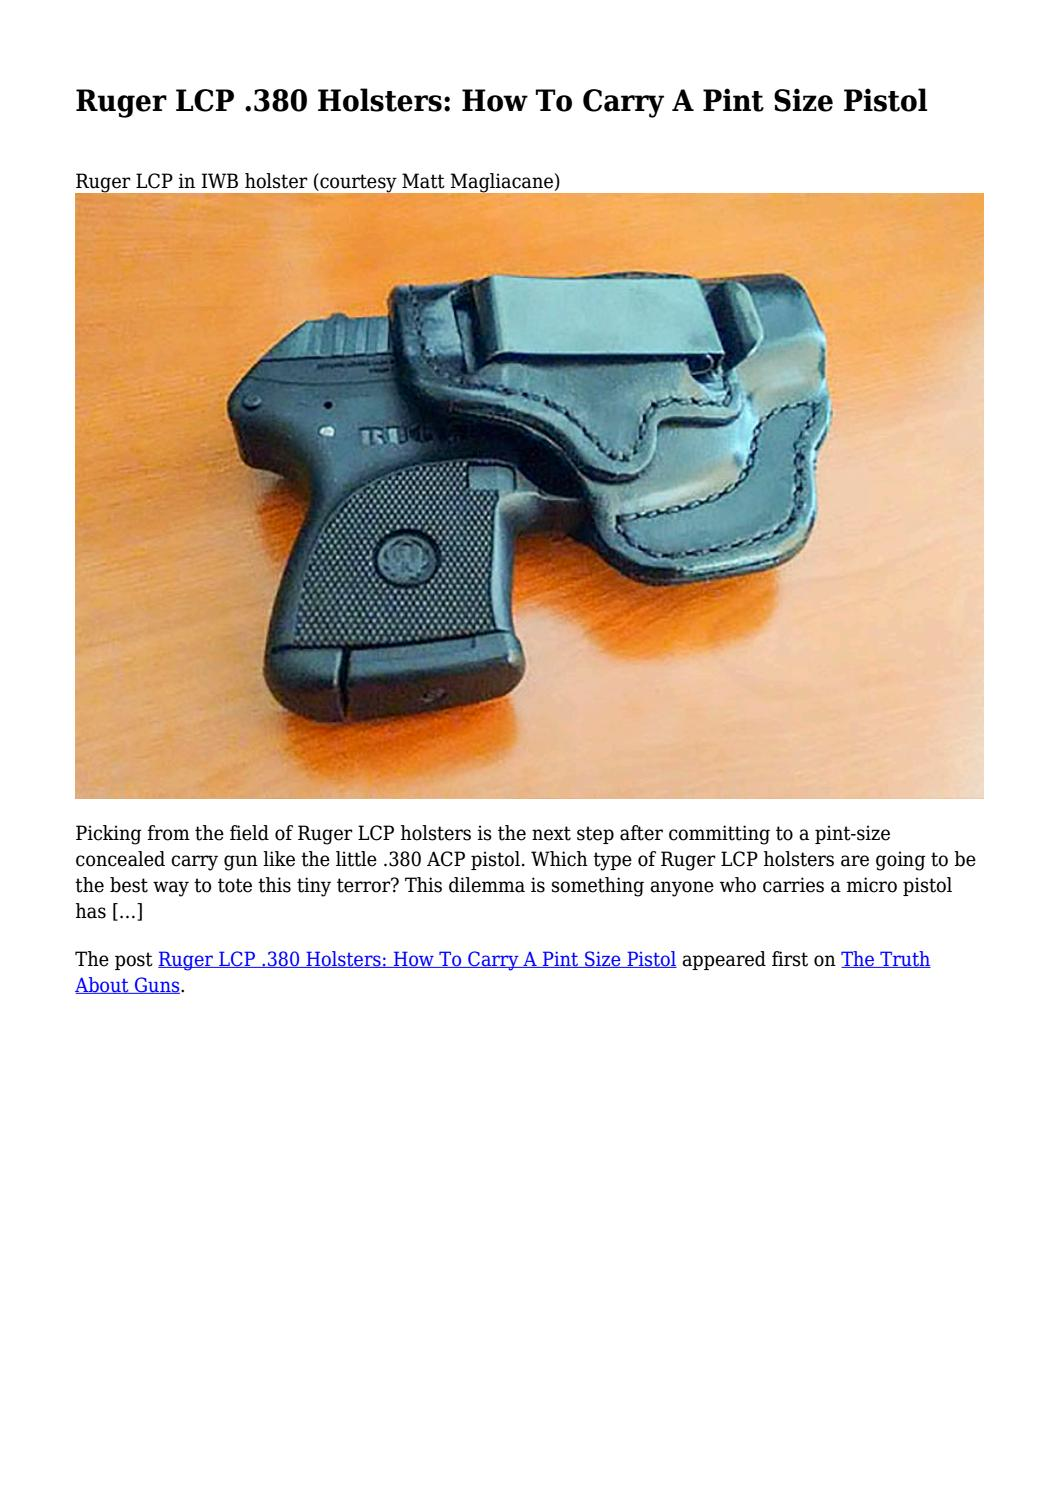 Ruger LCP  380 Holsters: How To Carry A Pint Size Pistol by